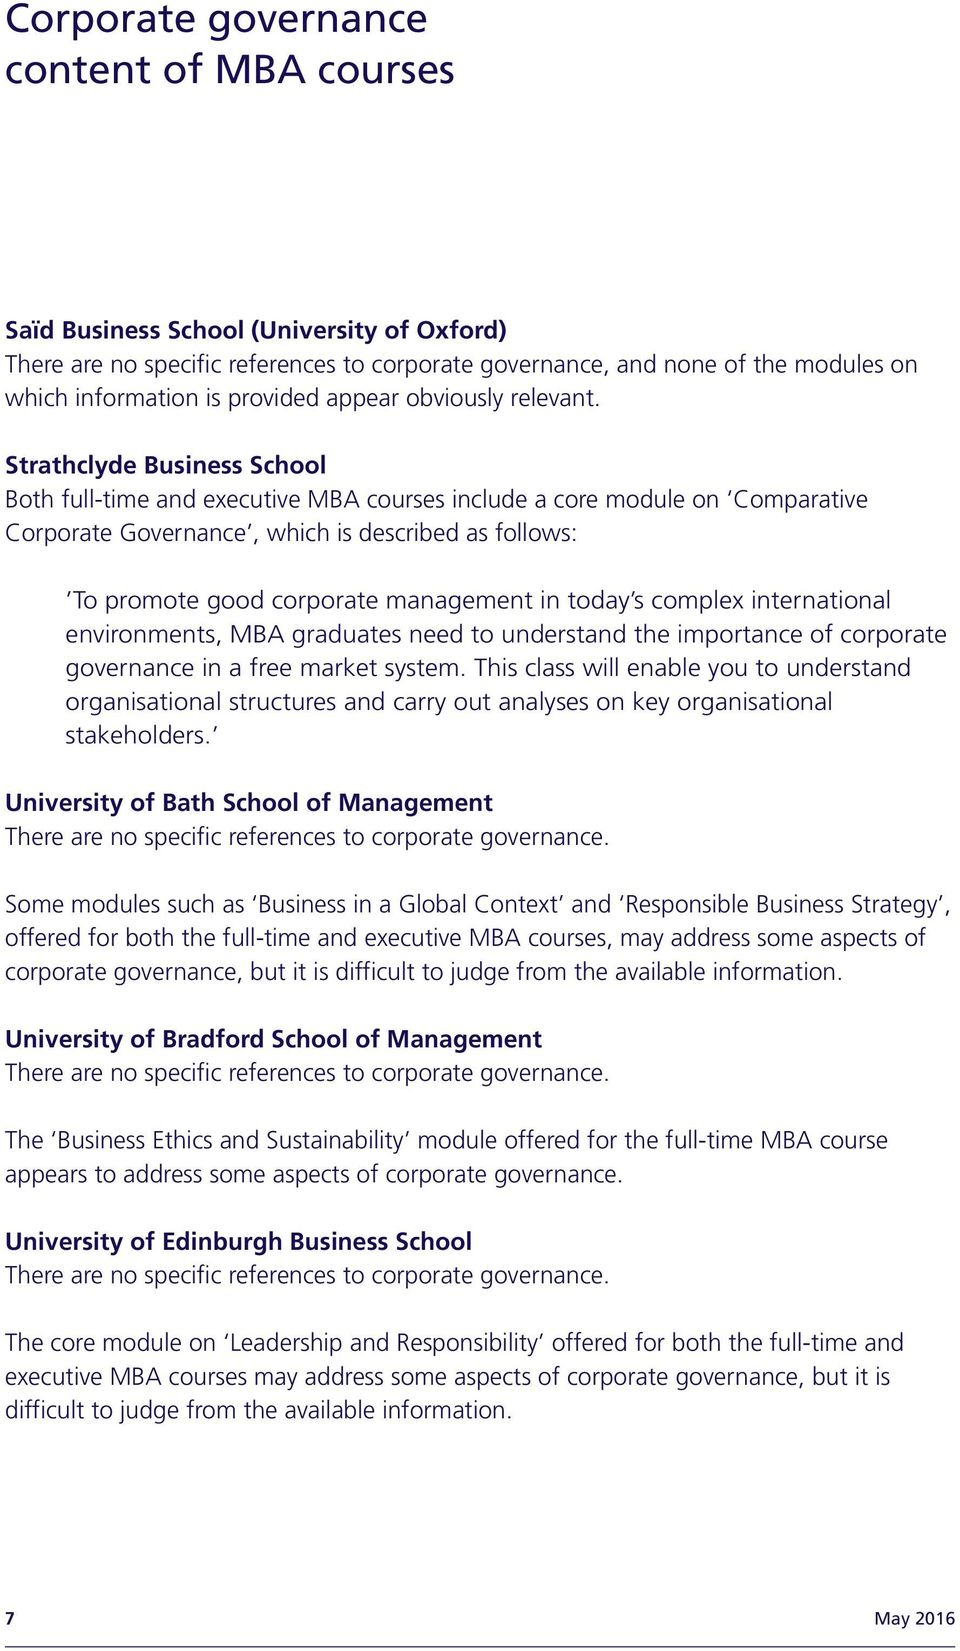 today s complex international environments, MBA graduates need to understand the importance of corporate governance in a free market system.